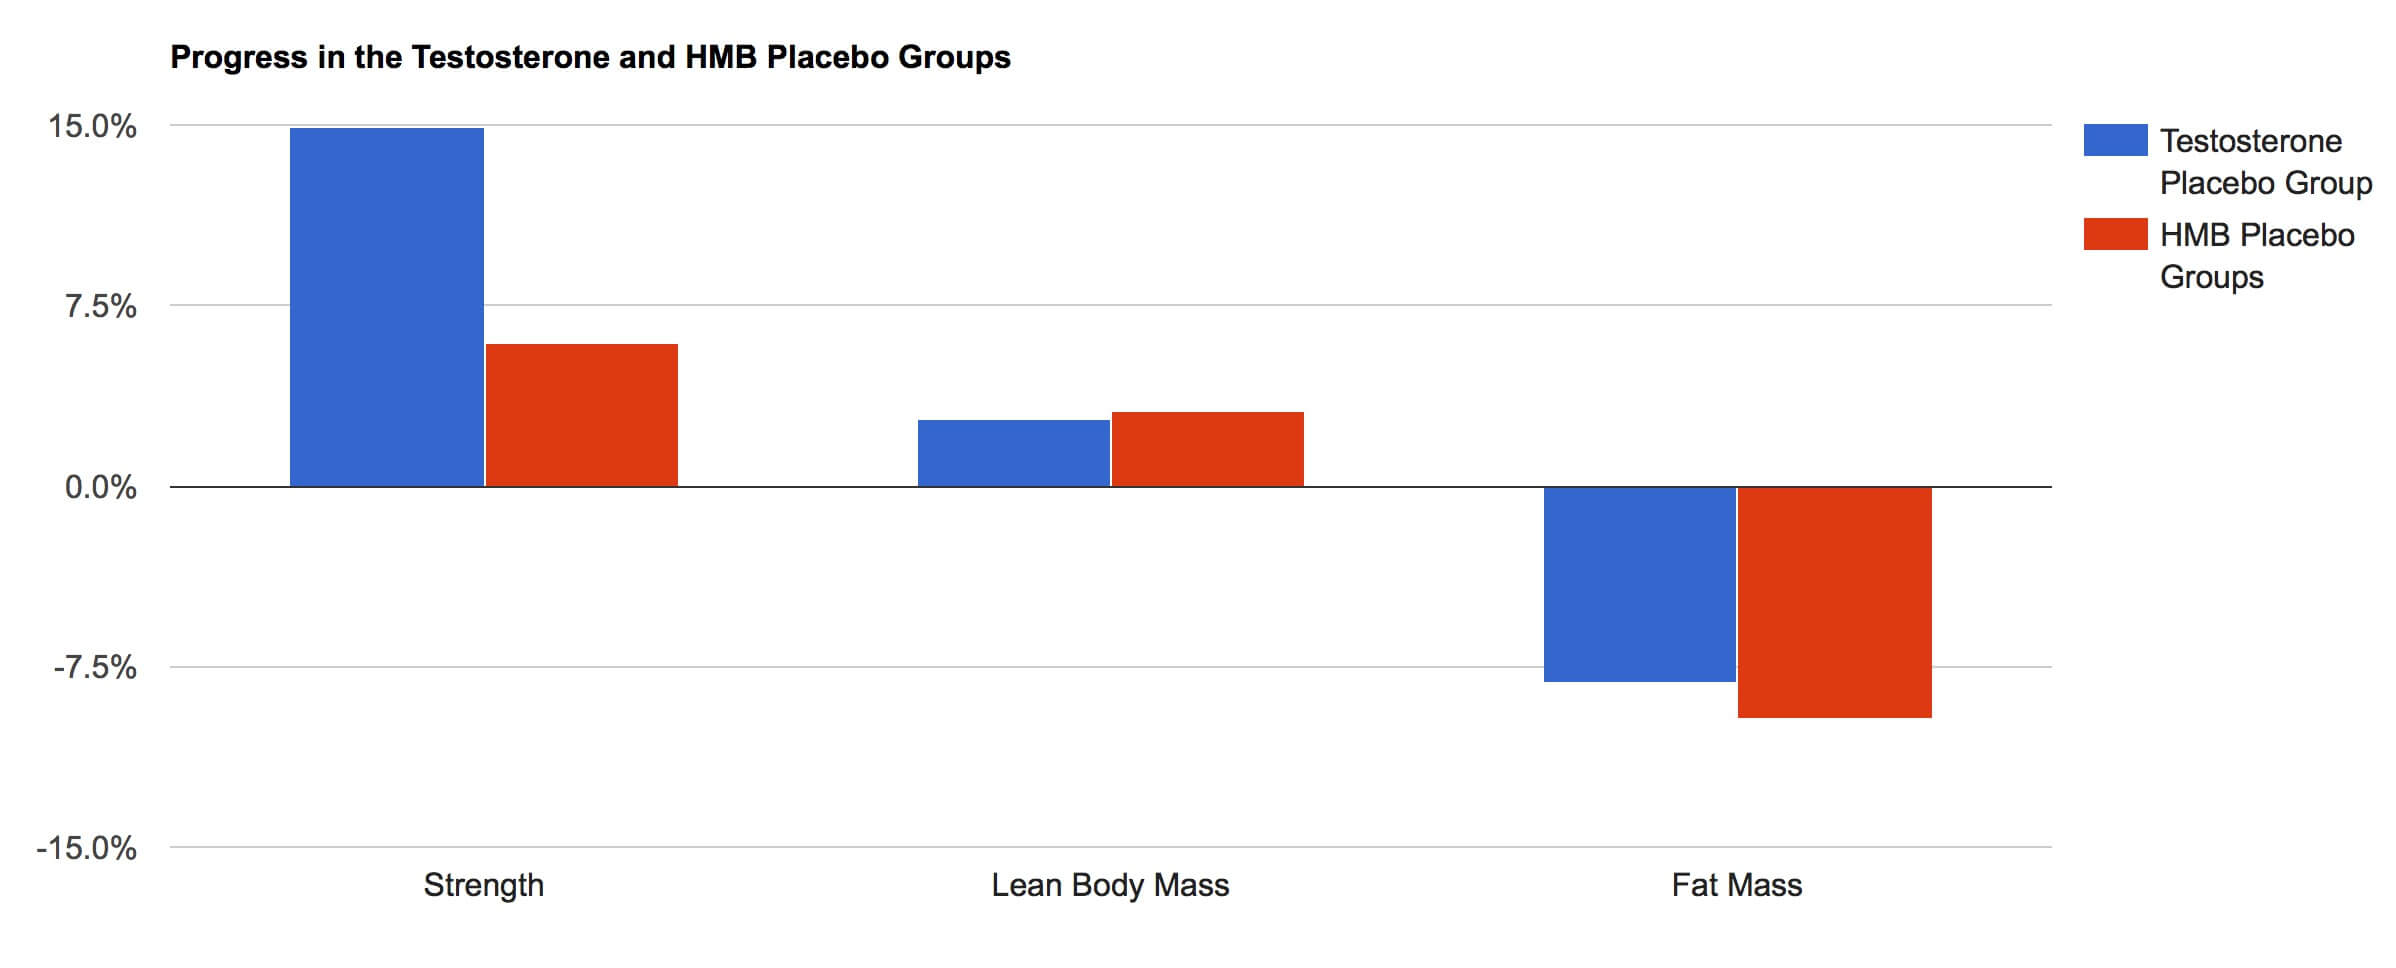 Versus Testosterone Placebo Groups